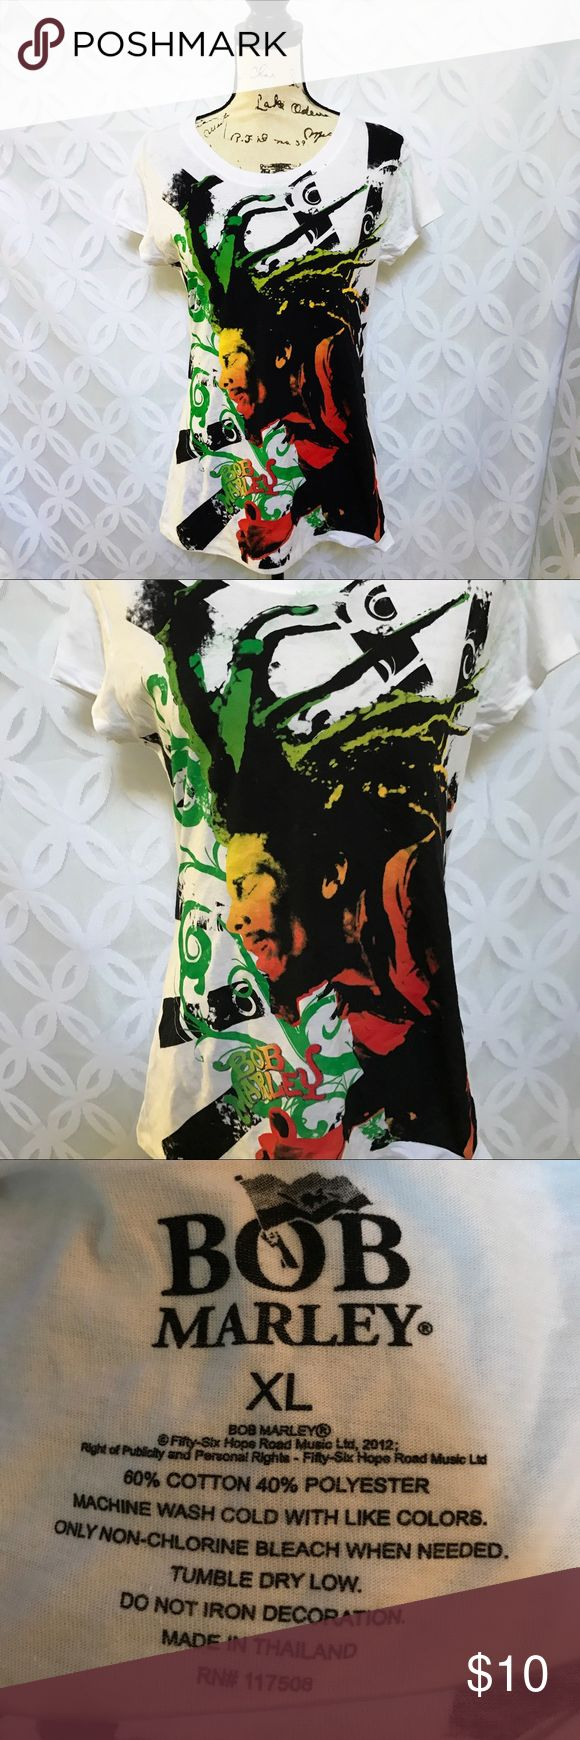 """Bob Marley Rastaman Reggae Jamaican Colors Tee Bob Marley Rastaman Reggae Jamaican Colors Tee NWOT.     Measurements Laying Flat Size 🔹 XL Armpit to Armpit 🔹19"""" Shoulder to Hem 🔹27"""" Bundle to Save 🤓 Sorry NO outside transactions 🚫 NO trades 🚫 Reasonable Offers welcomed 👍 NO Low balling 👎 NO modeling 👎 NO Holds👎 All items from a pet 😼and Smoke Free Home  Happy Poshing 🤗 Bob Marley Tops Tees - Short Sleeve"""